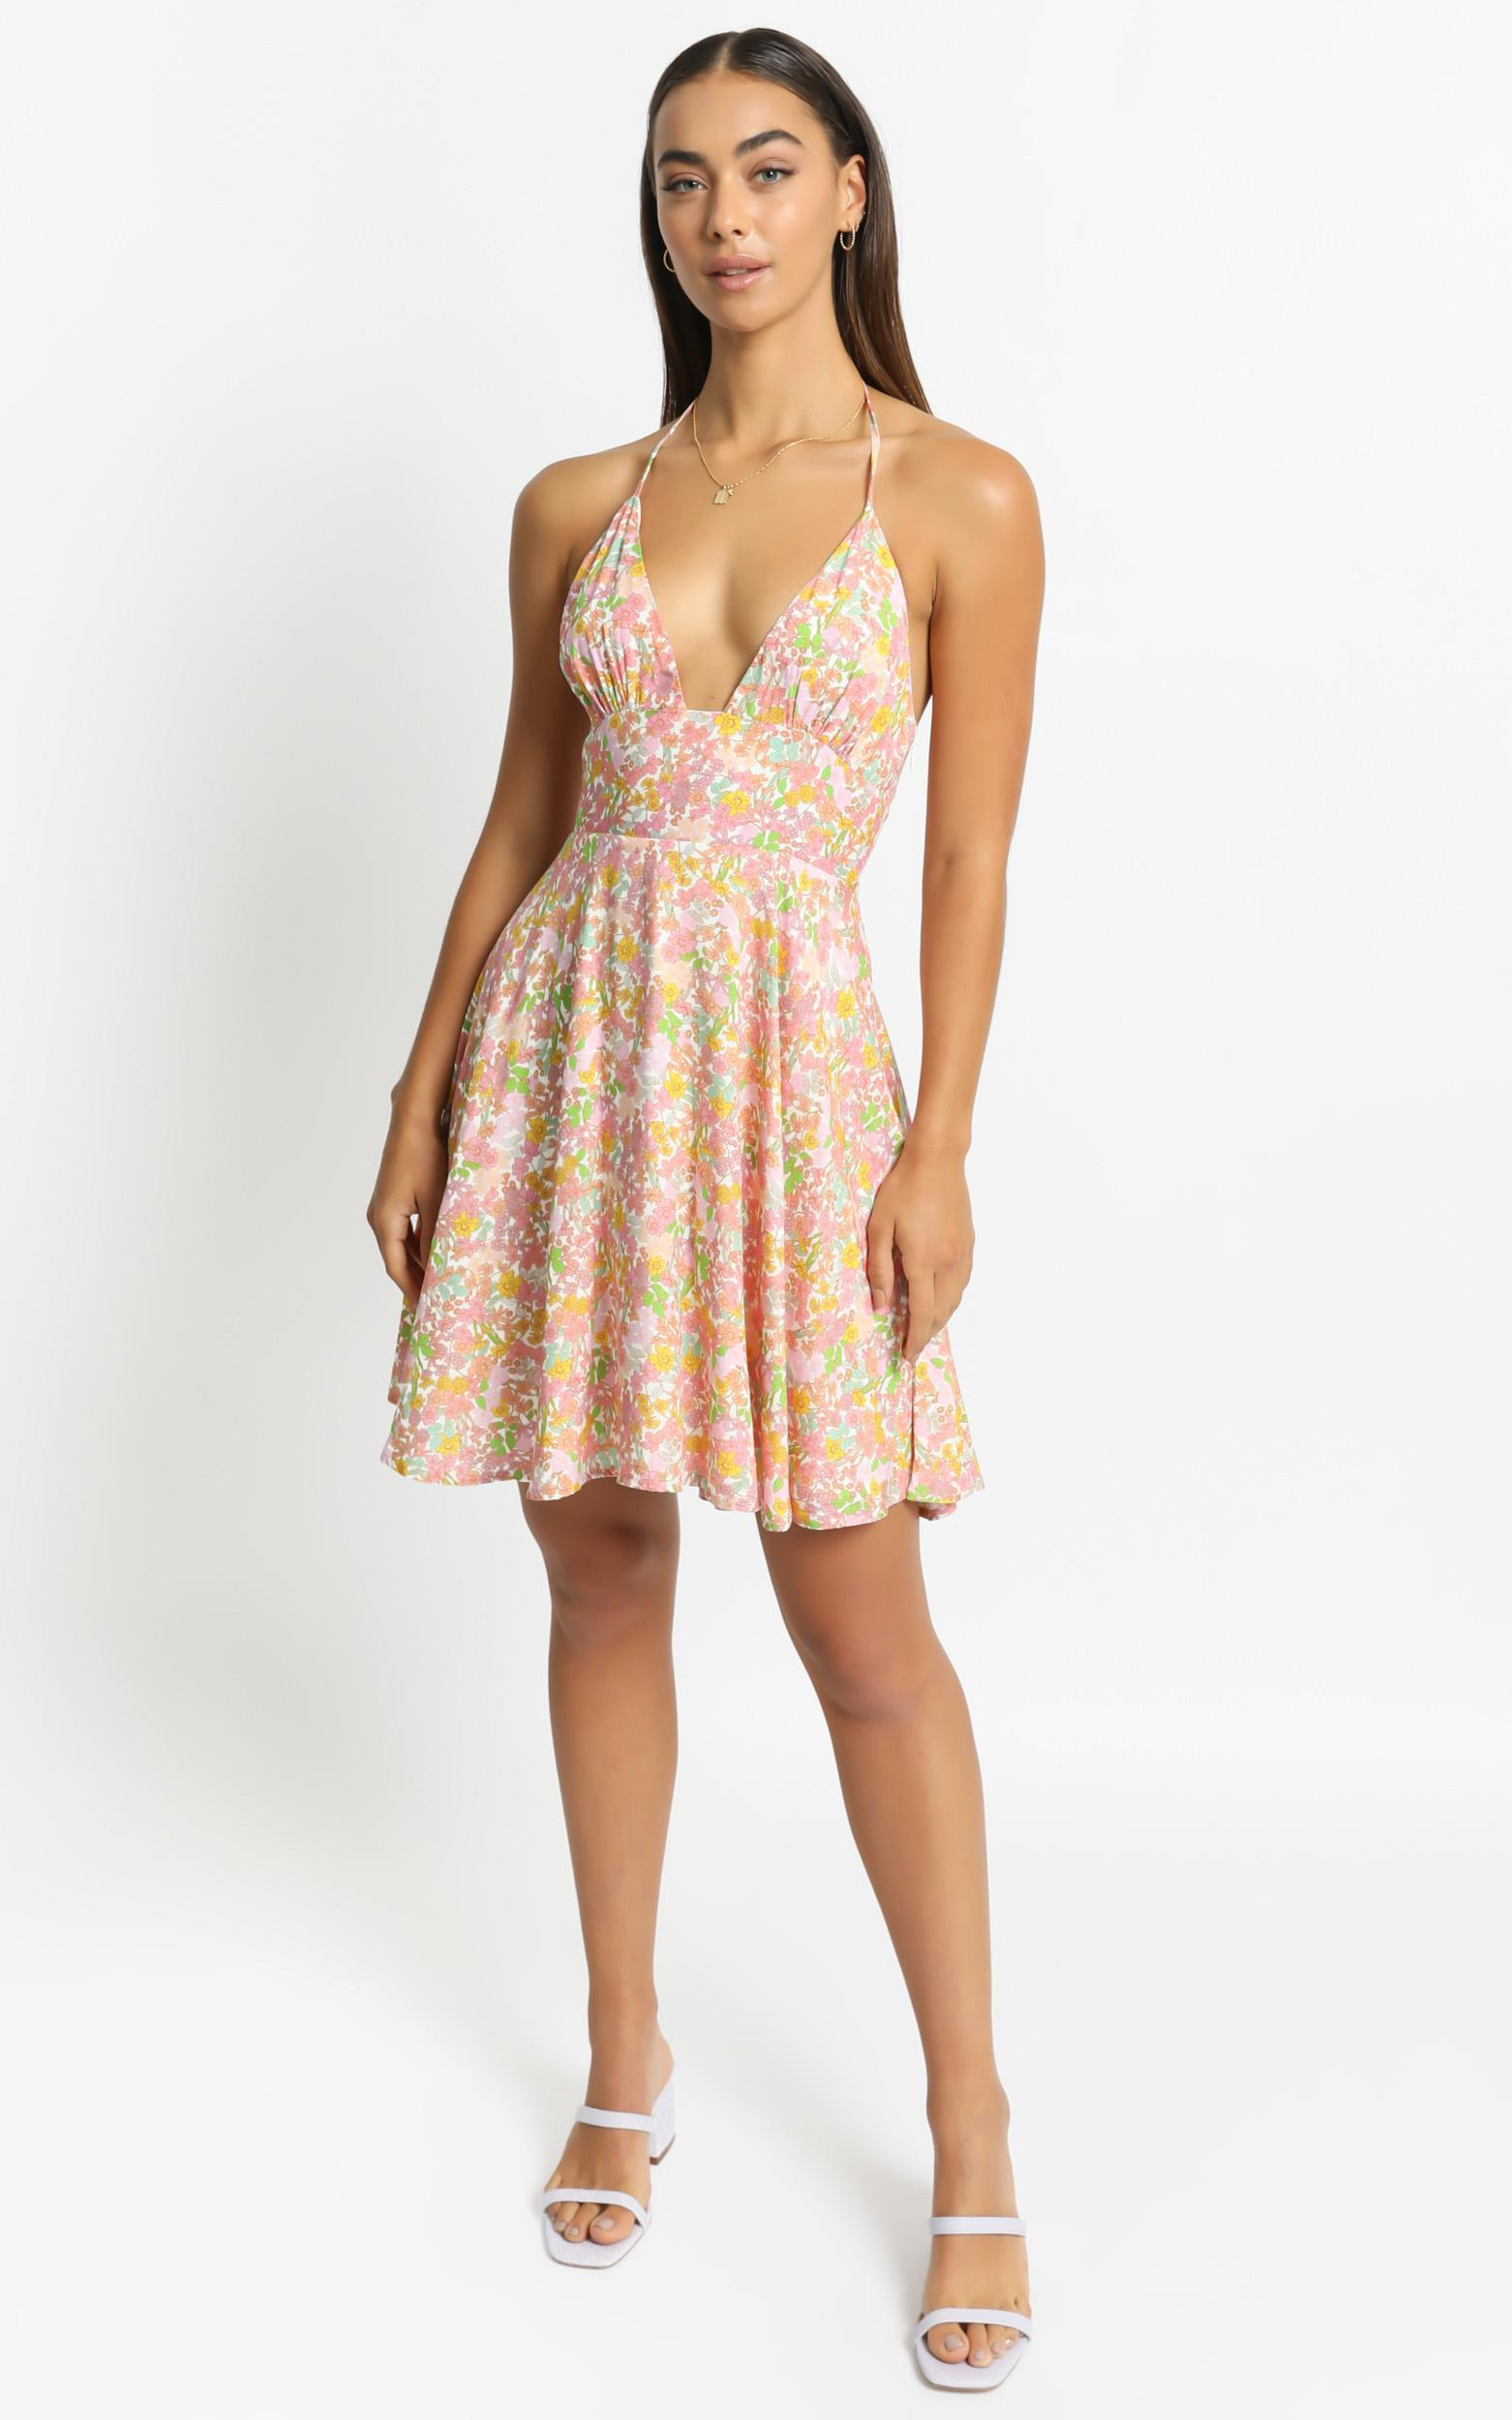 Augustina Dress in Flower Field - 6 (XS), Pink, hi-res image number null